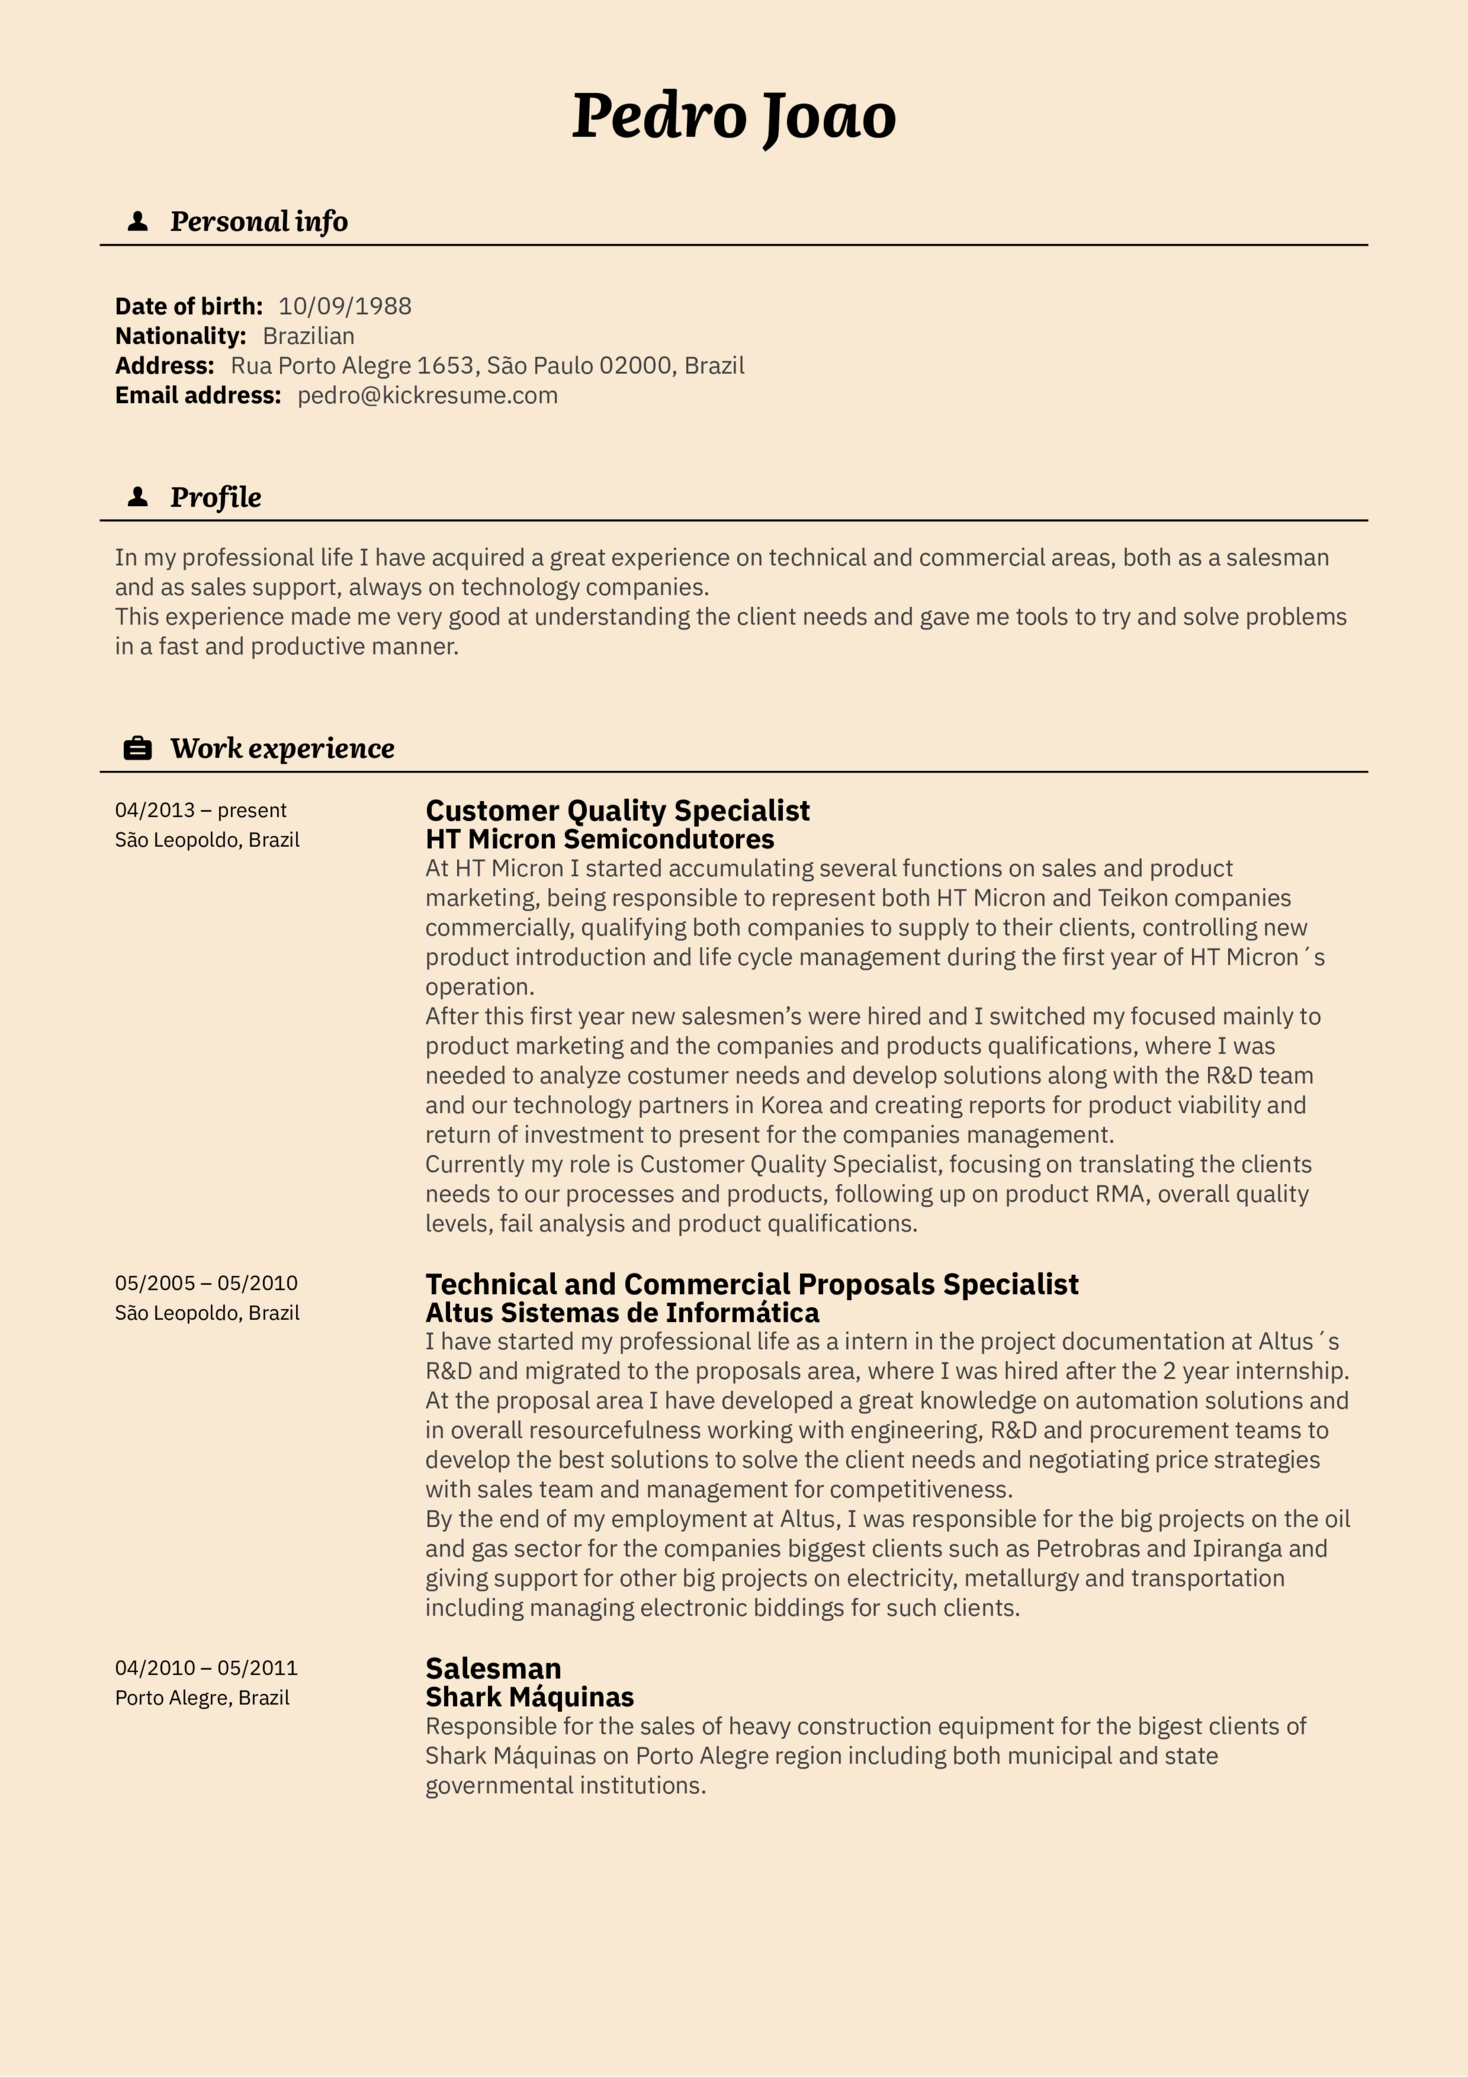 Customer Specialist Resume Example at Vodafone